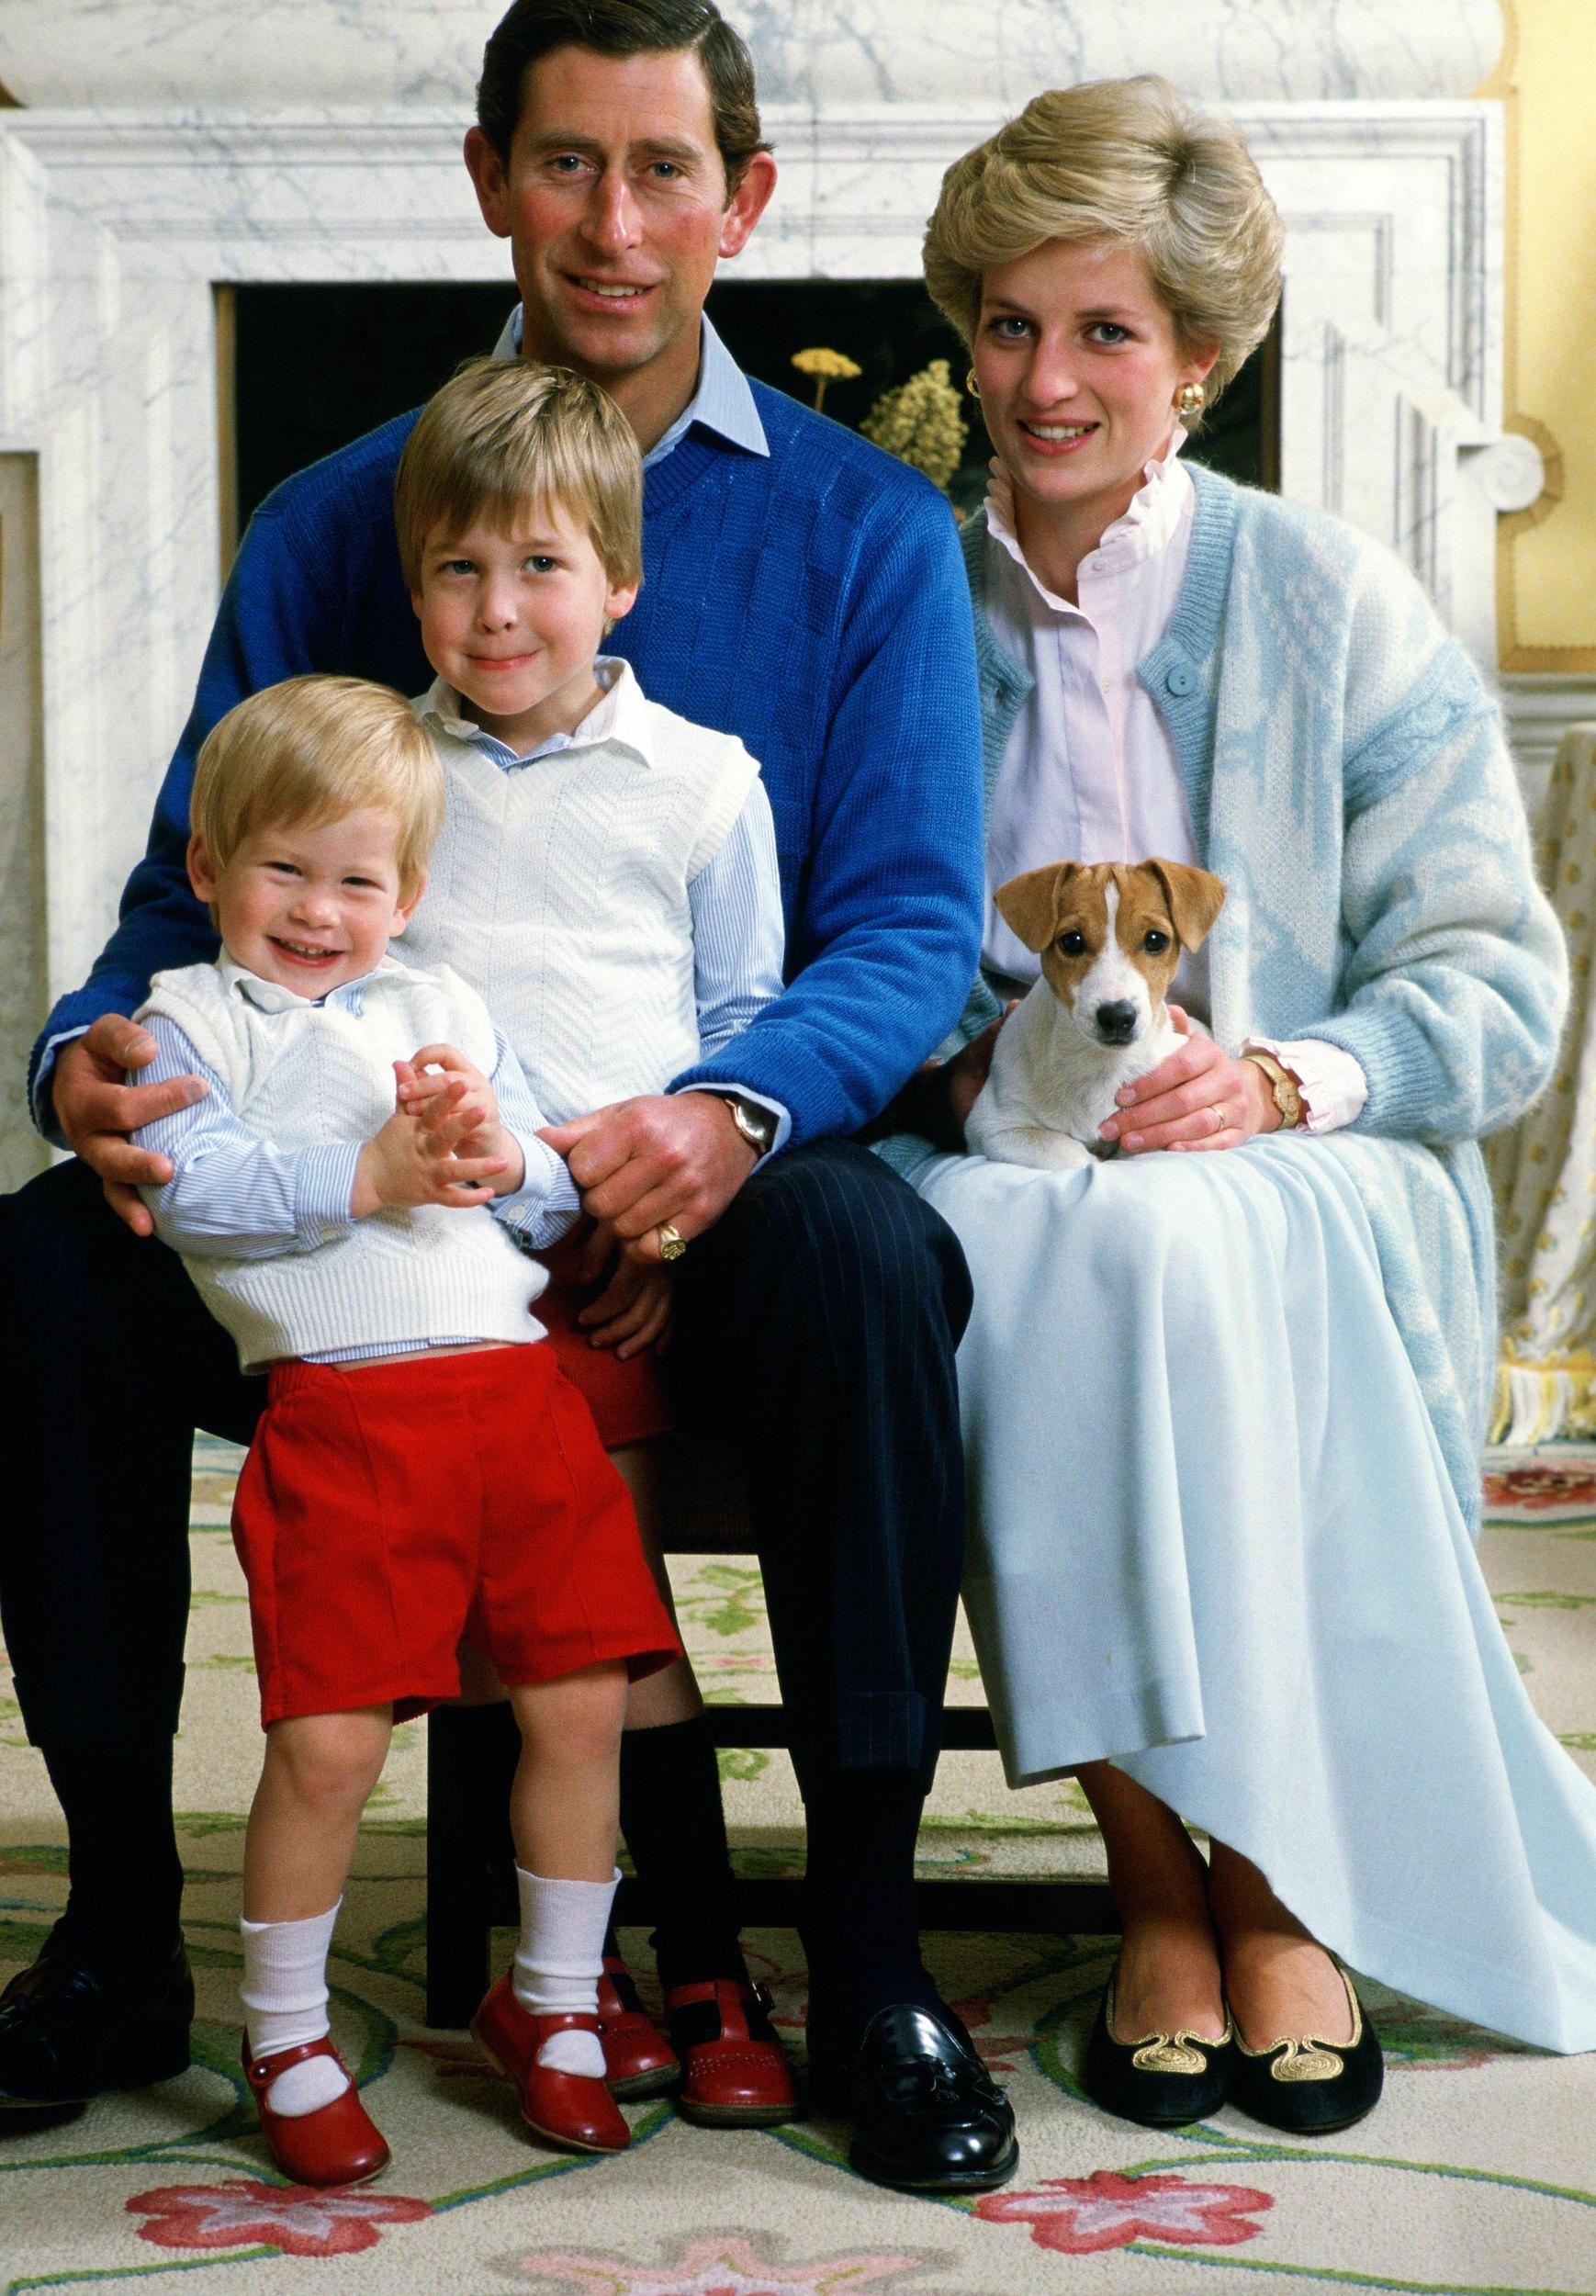 UNITED KINGDOM - DECEMBER 01:  Prince Charles, Prince of Wales and Diana, Princess of Wales at home in Kensington Palace with their sons Prince William and Prince Harry  (Photo by Tim Graham/Getty Images)